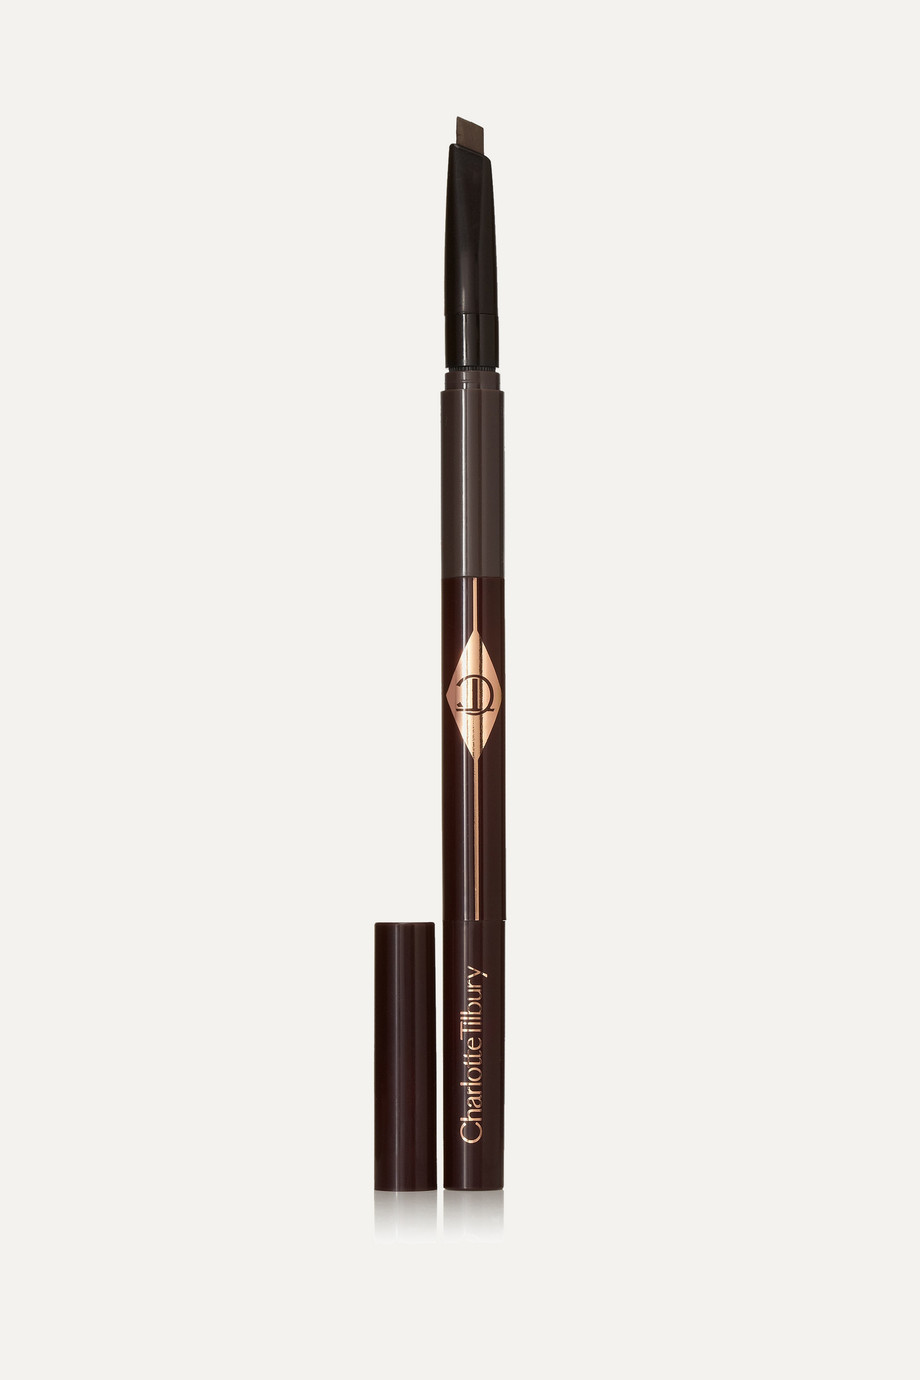 Charlotte Tilbury Brow Lift - Super Model Brow